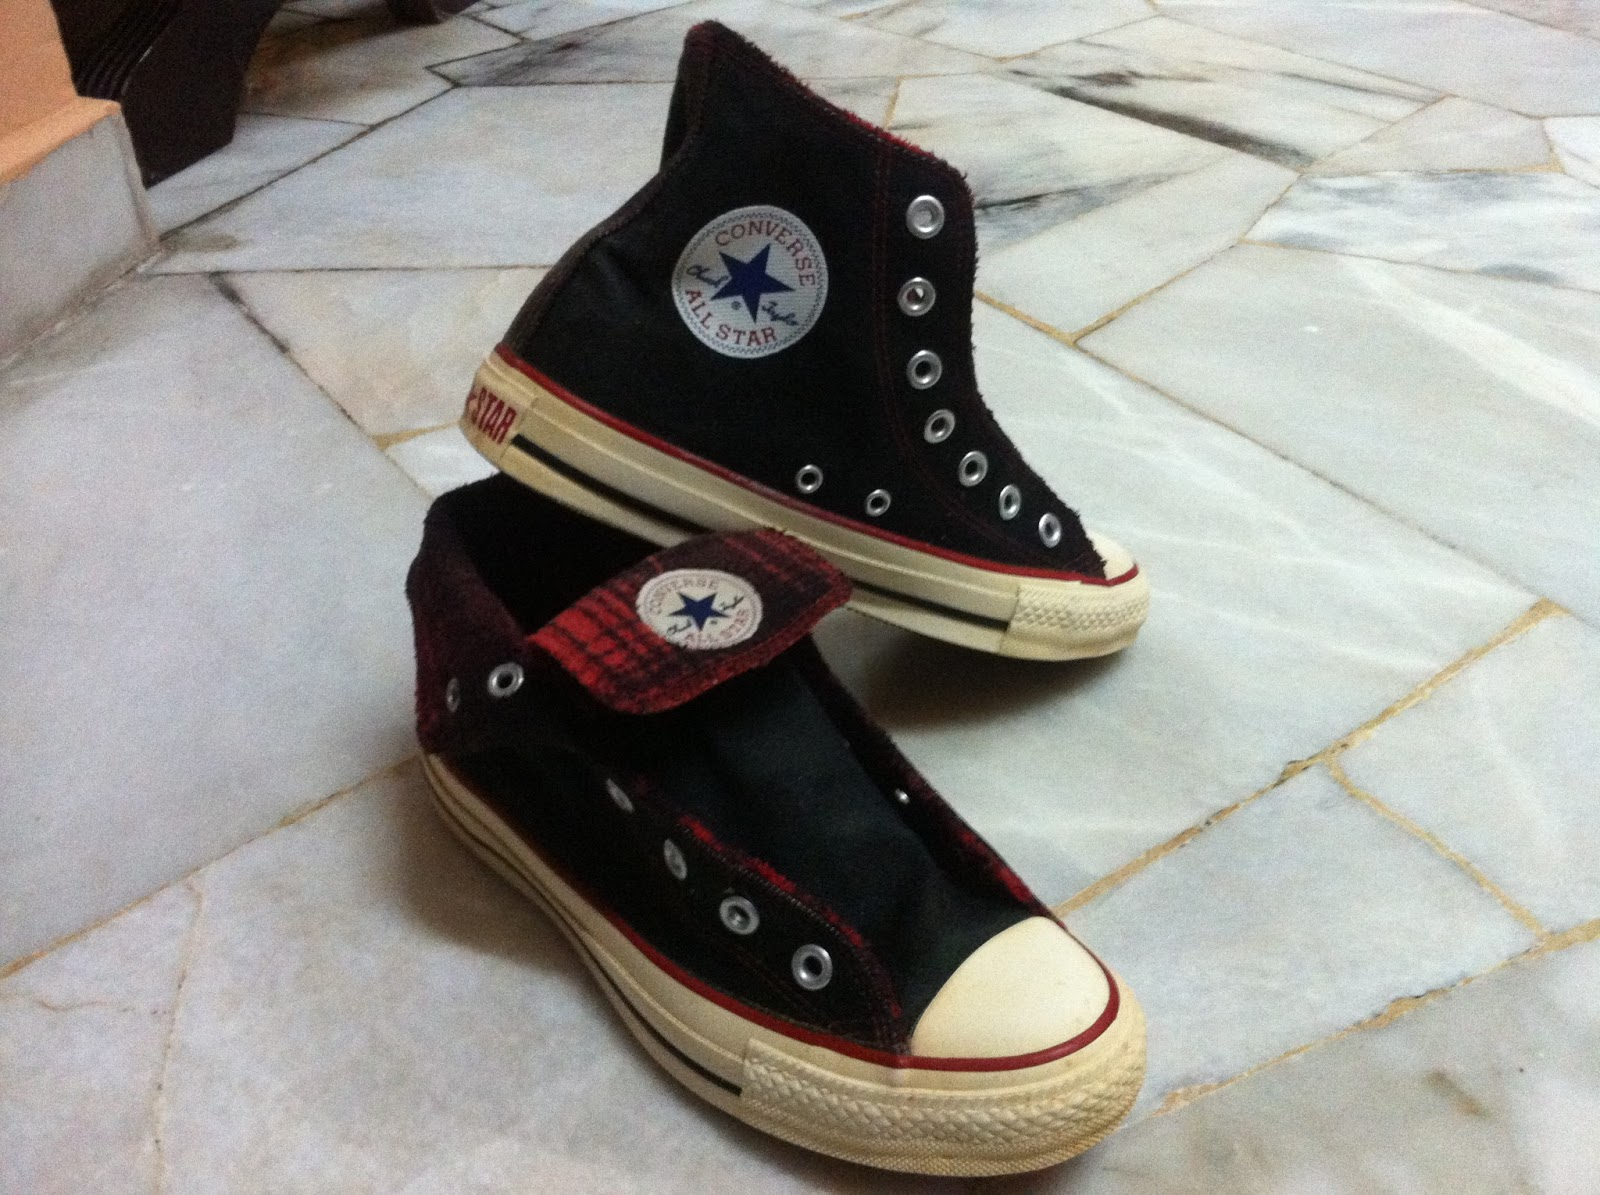 975e388a22d7 RIDZ TRADE Online  Converse All Star Chuck Taylor Hi Black Red Stitch  Foldable Unisex Trainers Shoes